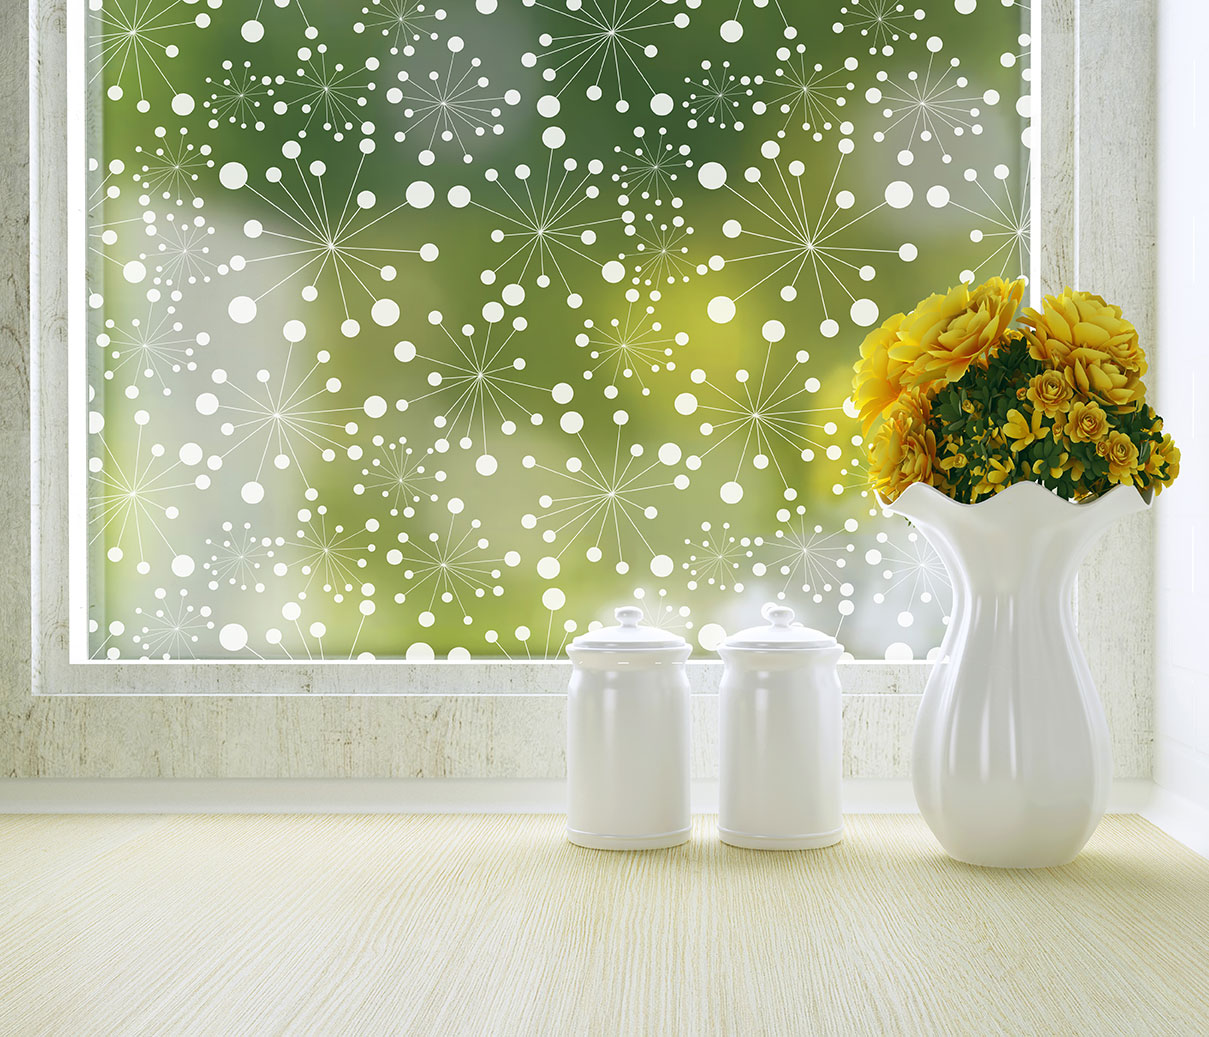 nova window film by odhams press